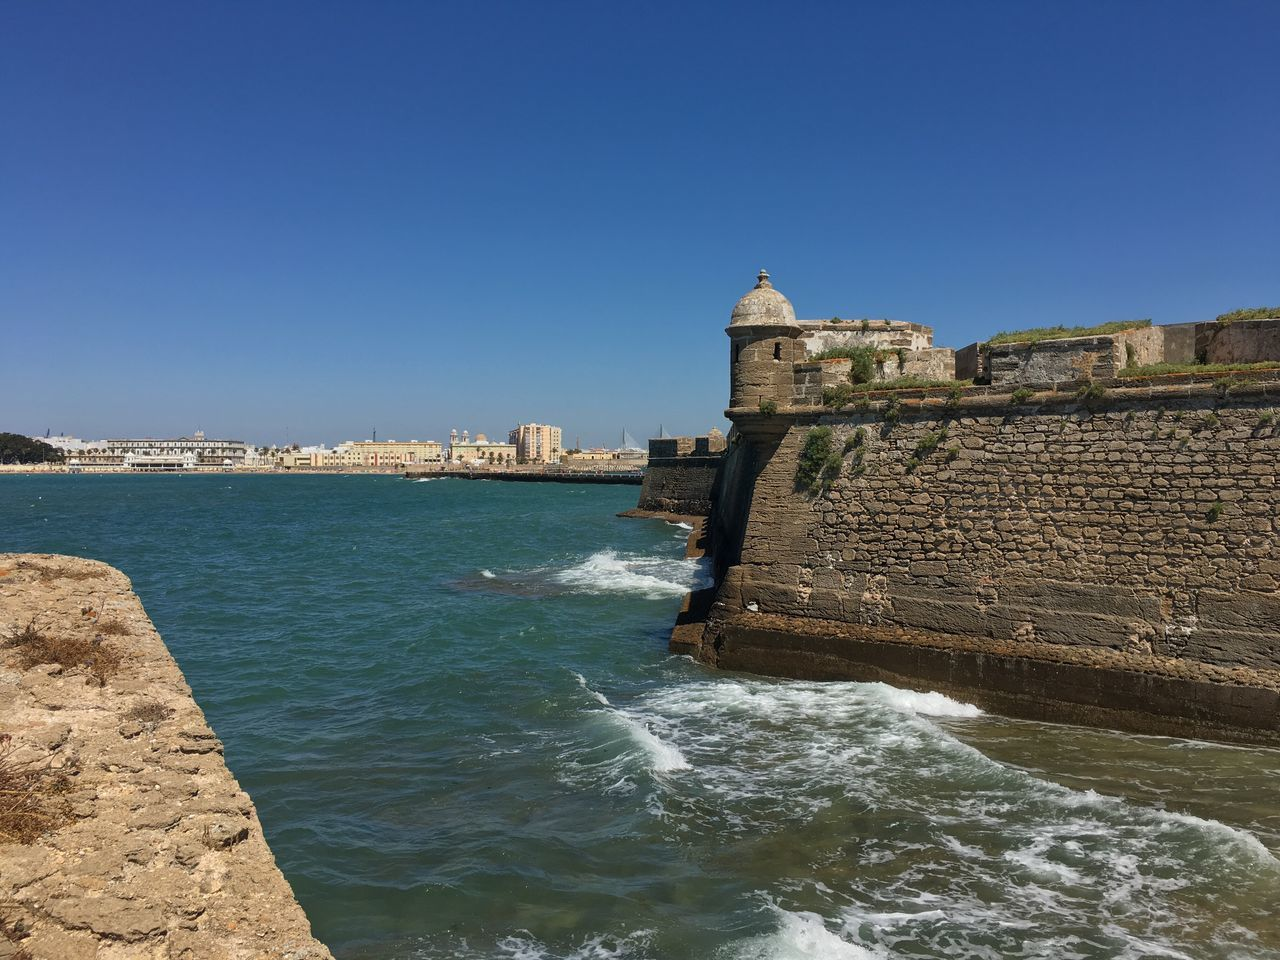 architecture, water, built structure, history, building exterior, sea, copy space, fort, day, travel destinations, outdoors, clear sky, castle, no people, blue, nature, city, beauty in nature, sky